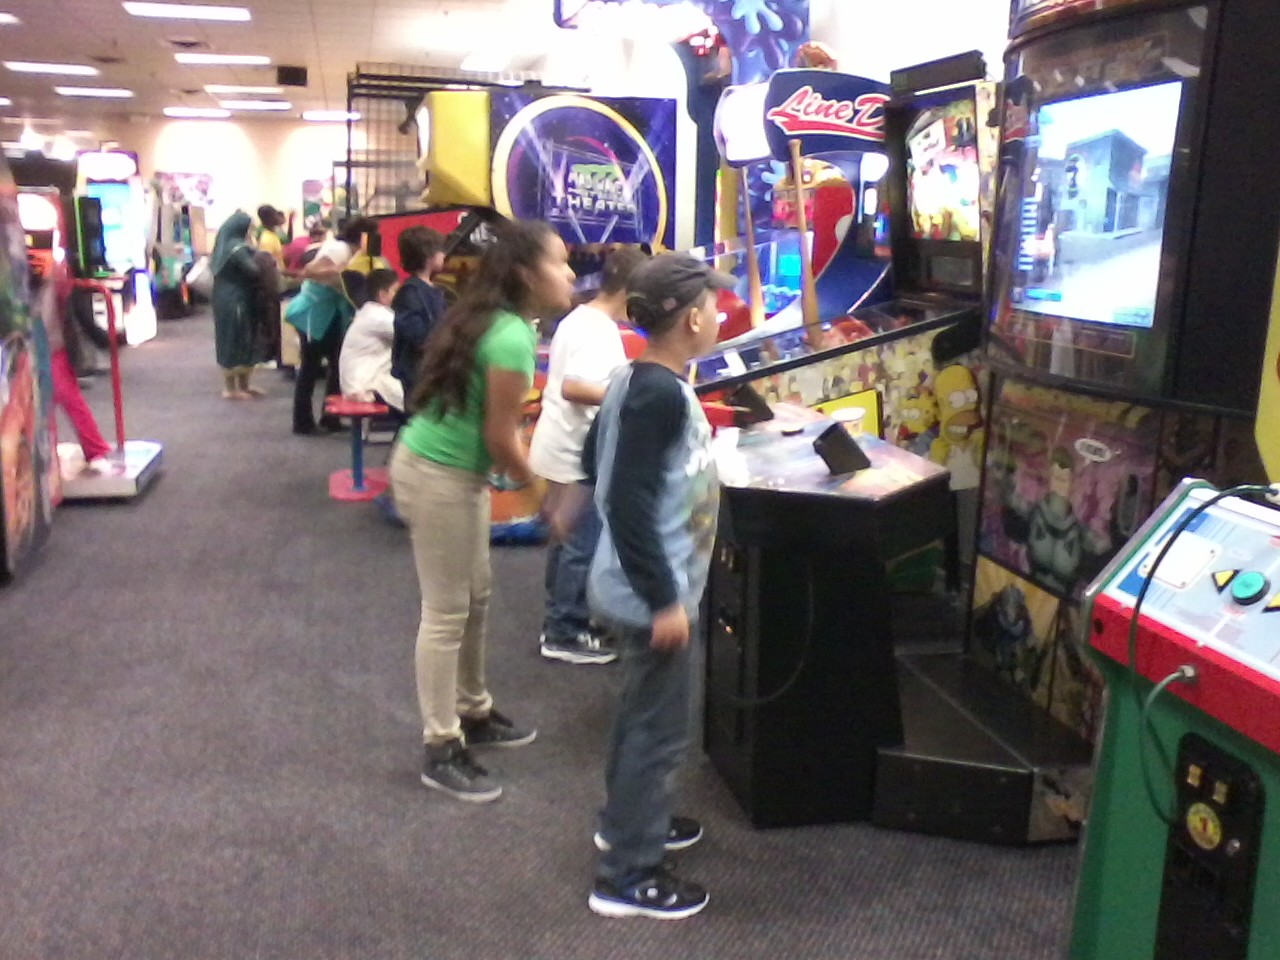 Chuck E. Cheese's FUN-Raiser 2012!